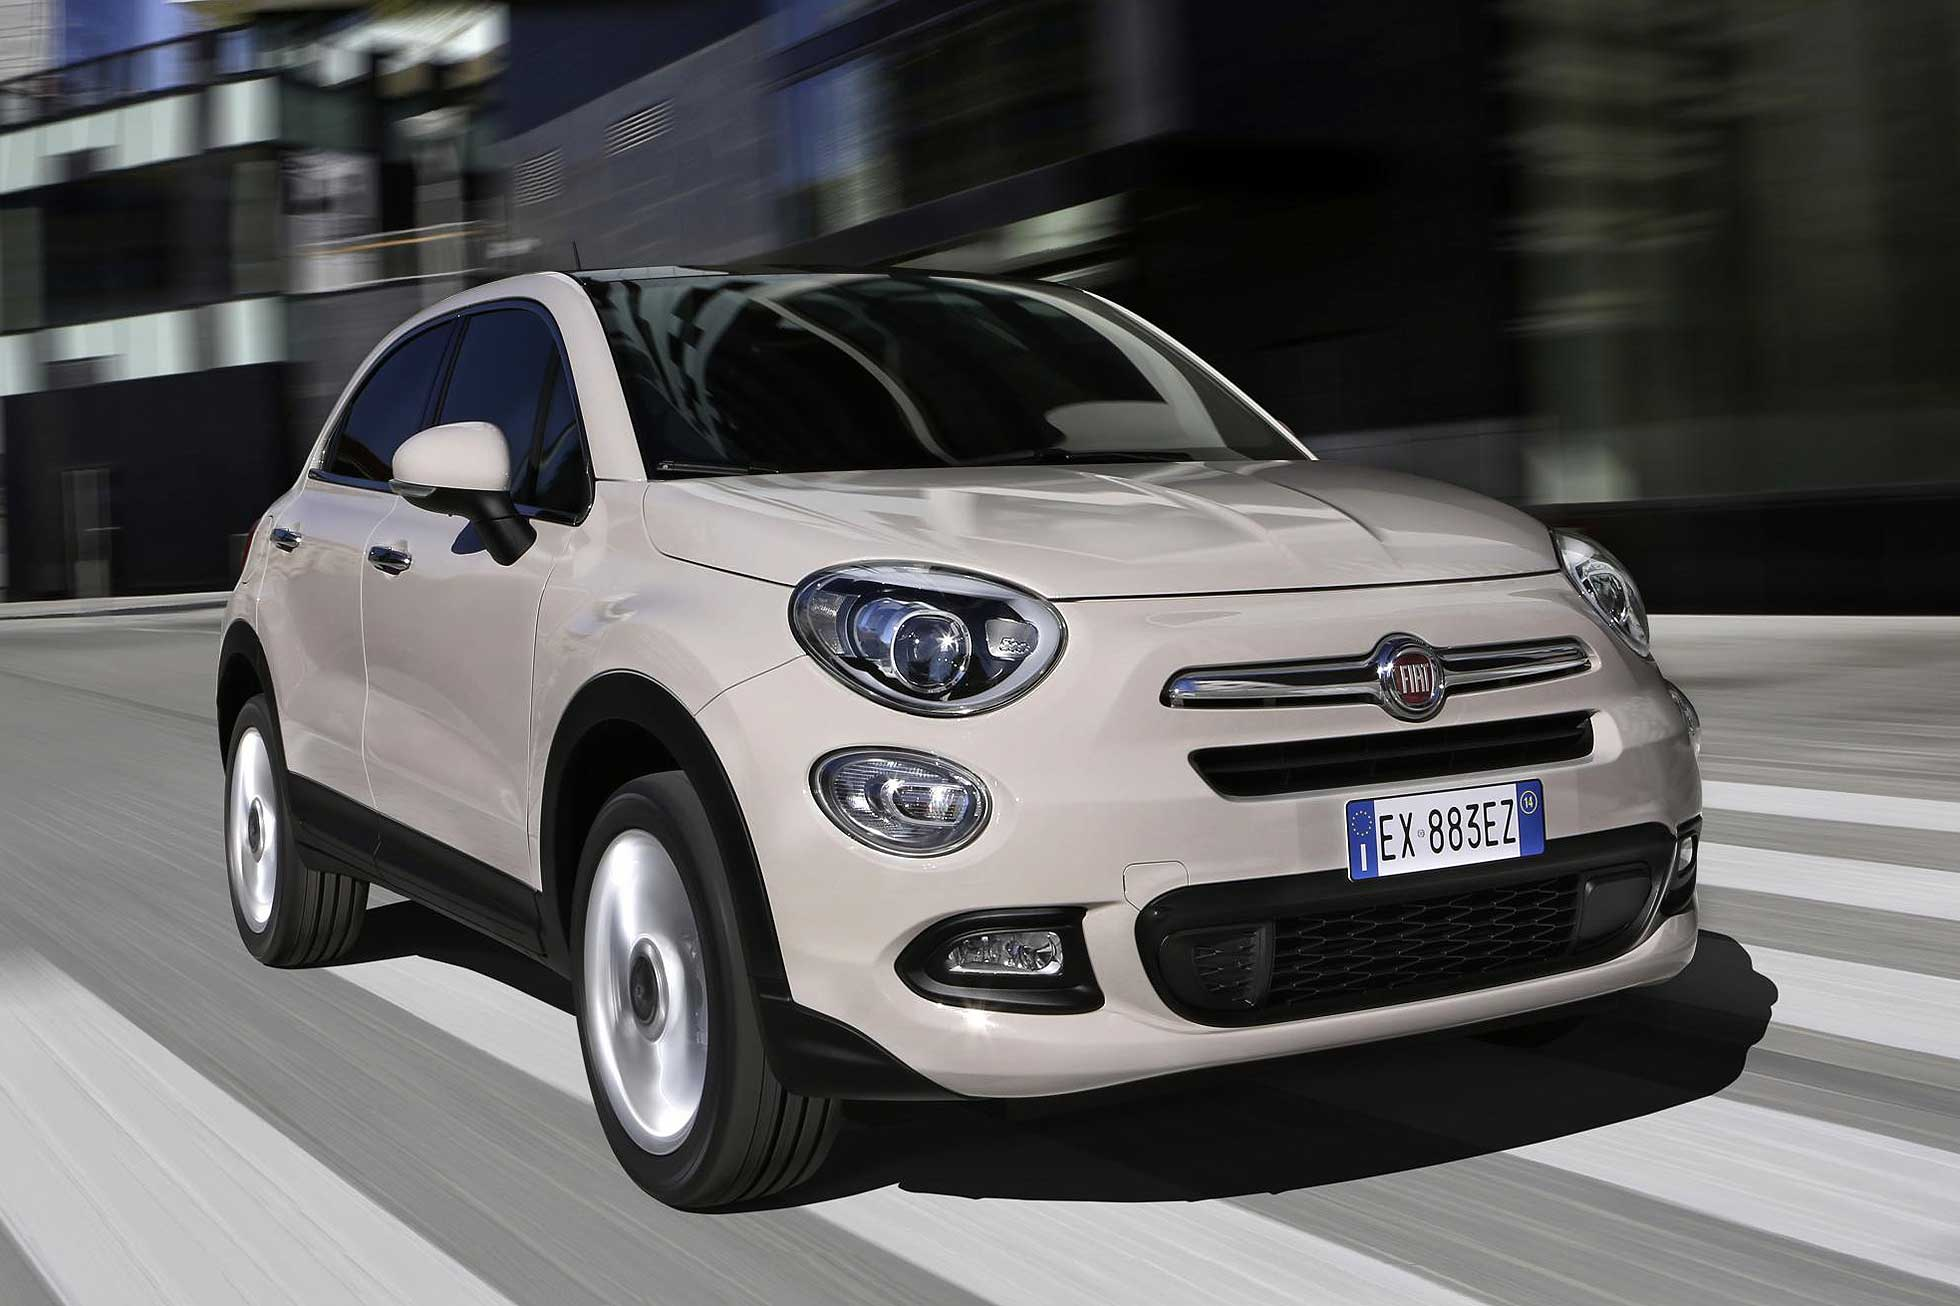 fiat 500x crossover priced from 14 595 in uk motoring. Black Bedroom Furniture Sets. Home Design Ideas